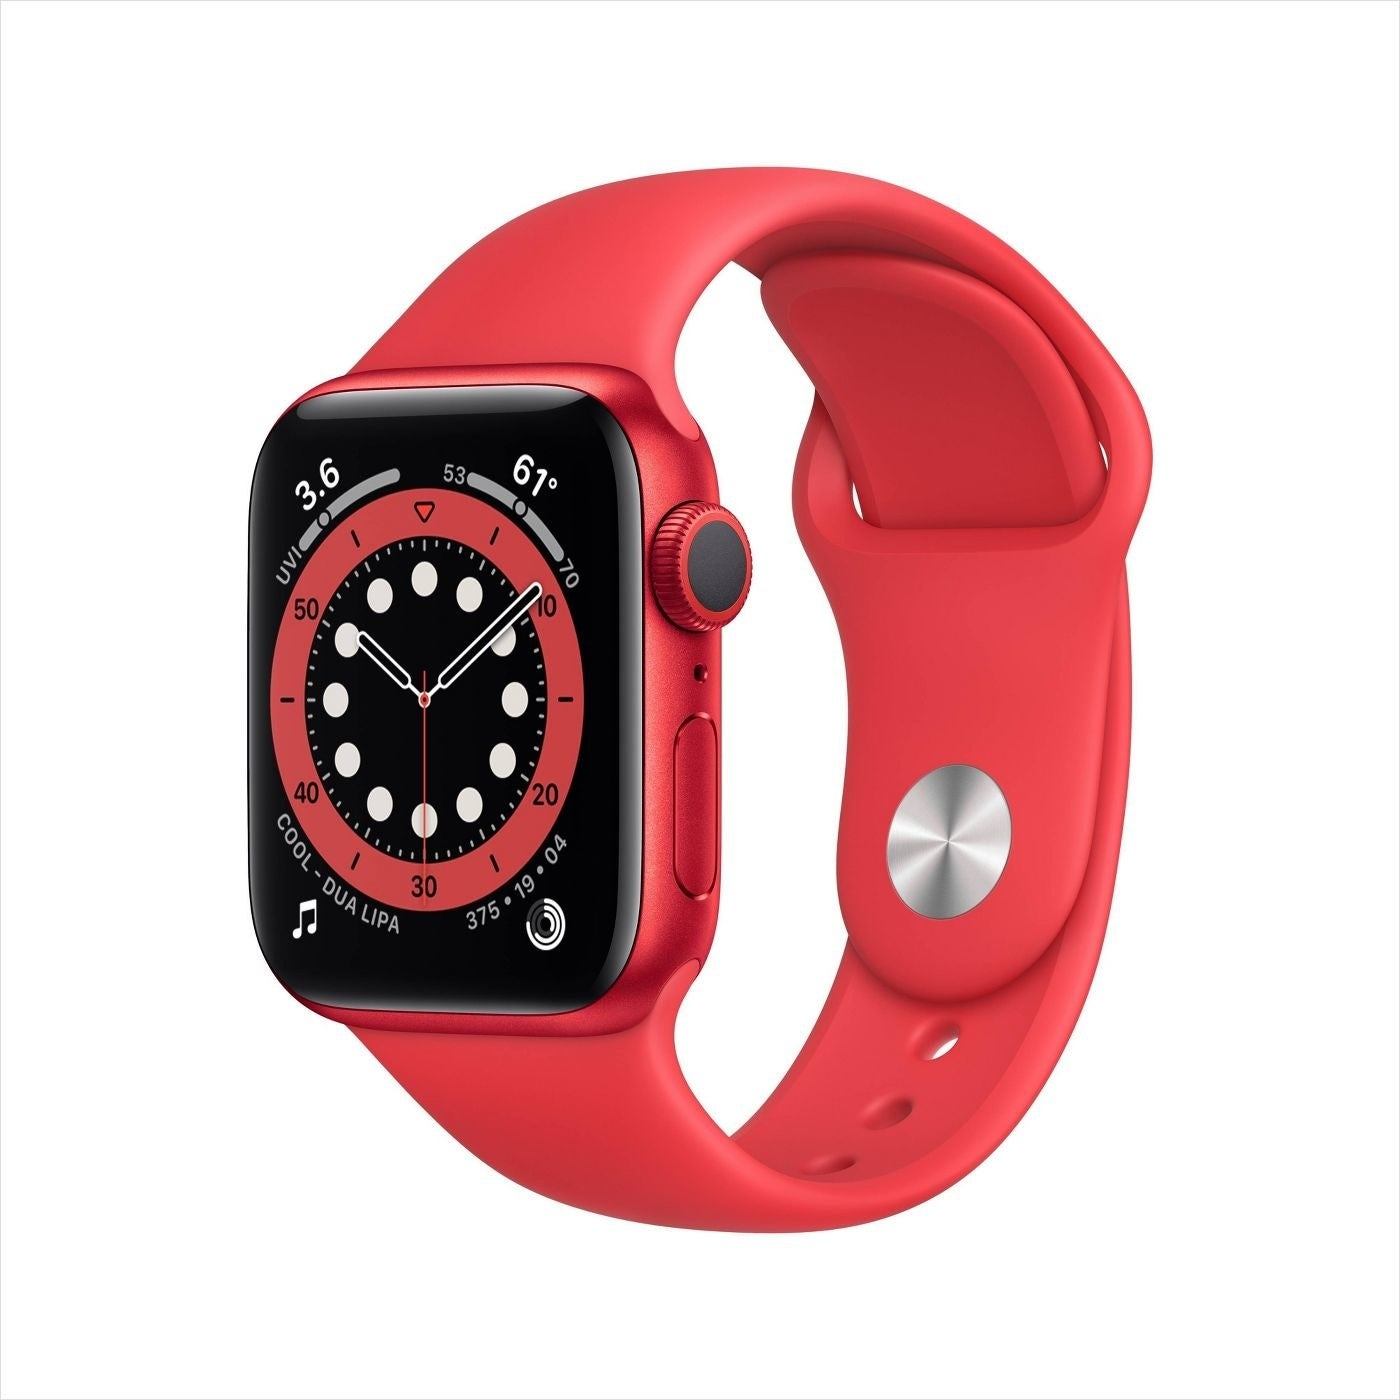 the watch in red